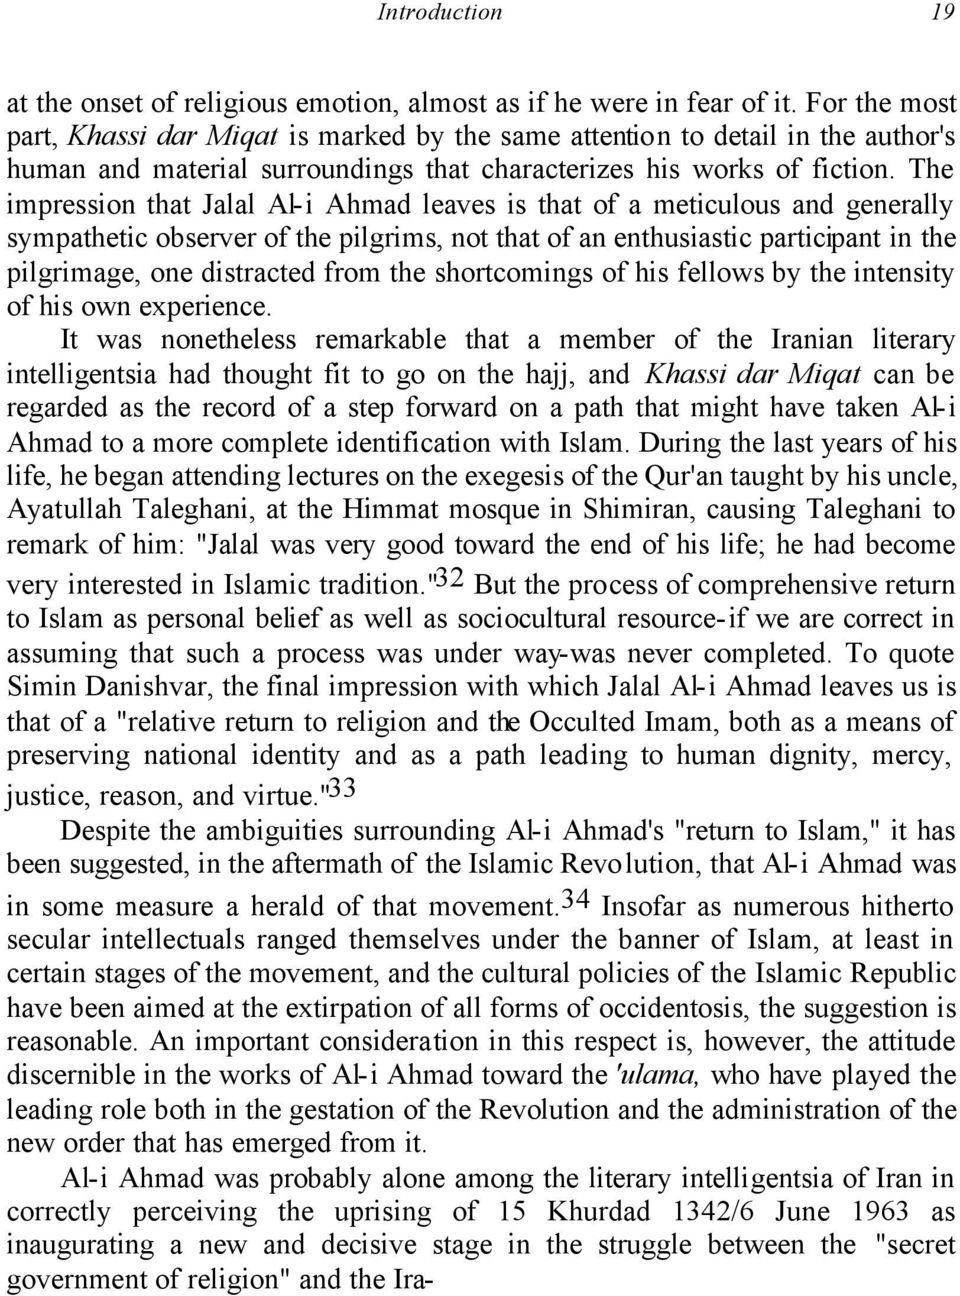 The impression that Jalal Al-i Ahmad leaves is that of a meticulous and generally sympathetic observer of the pilgrims, not that of an enthusiastic participant in the pilgrimage, one distracted from